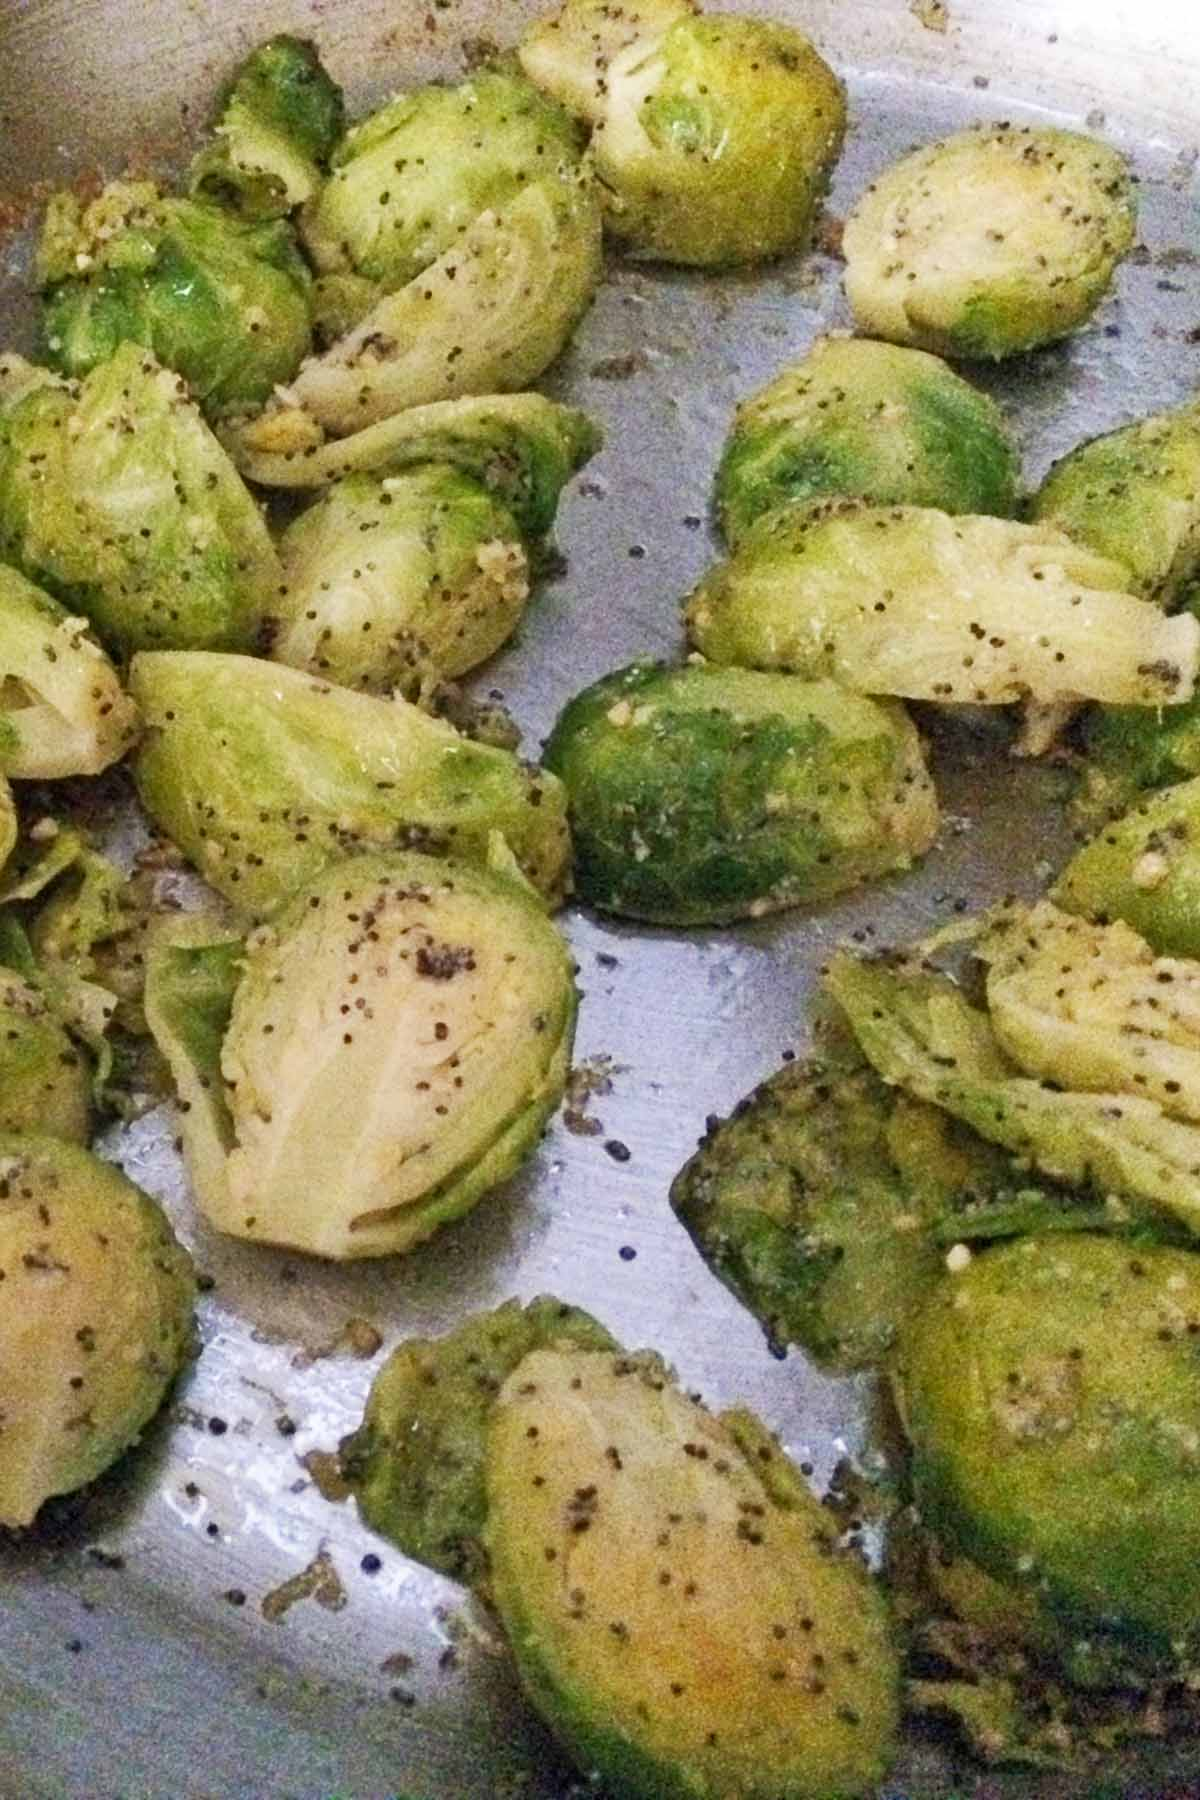 Brussels Sprouts with Poppy Seeds and Lemon in a pan